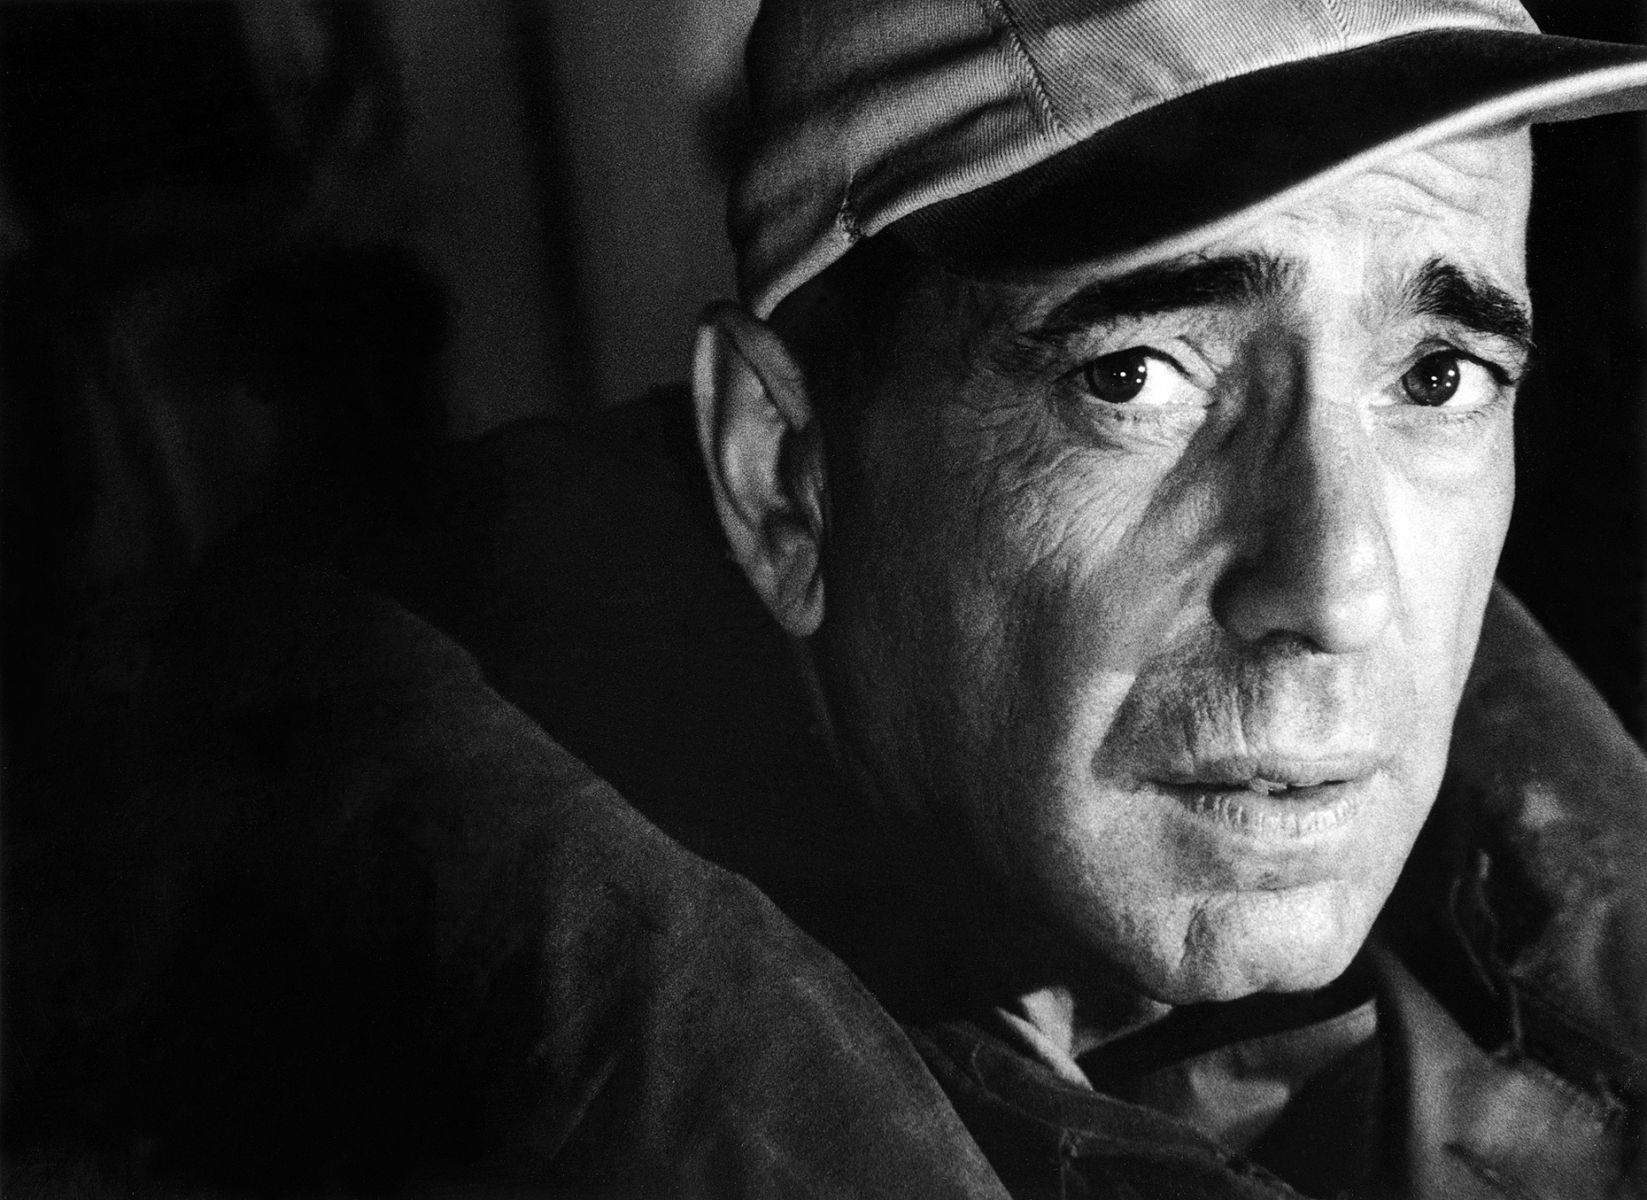 Humphrey Bogart, one of the most memorable faces in the history of cinema, portrayed as Captain Queeg in The Caine Mutiny, Columbia Studios, 1953.